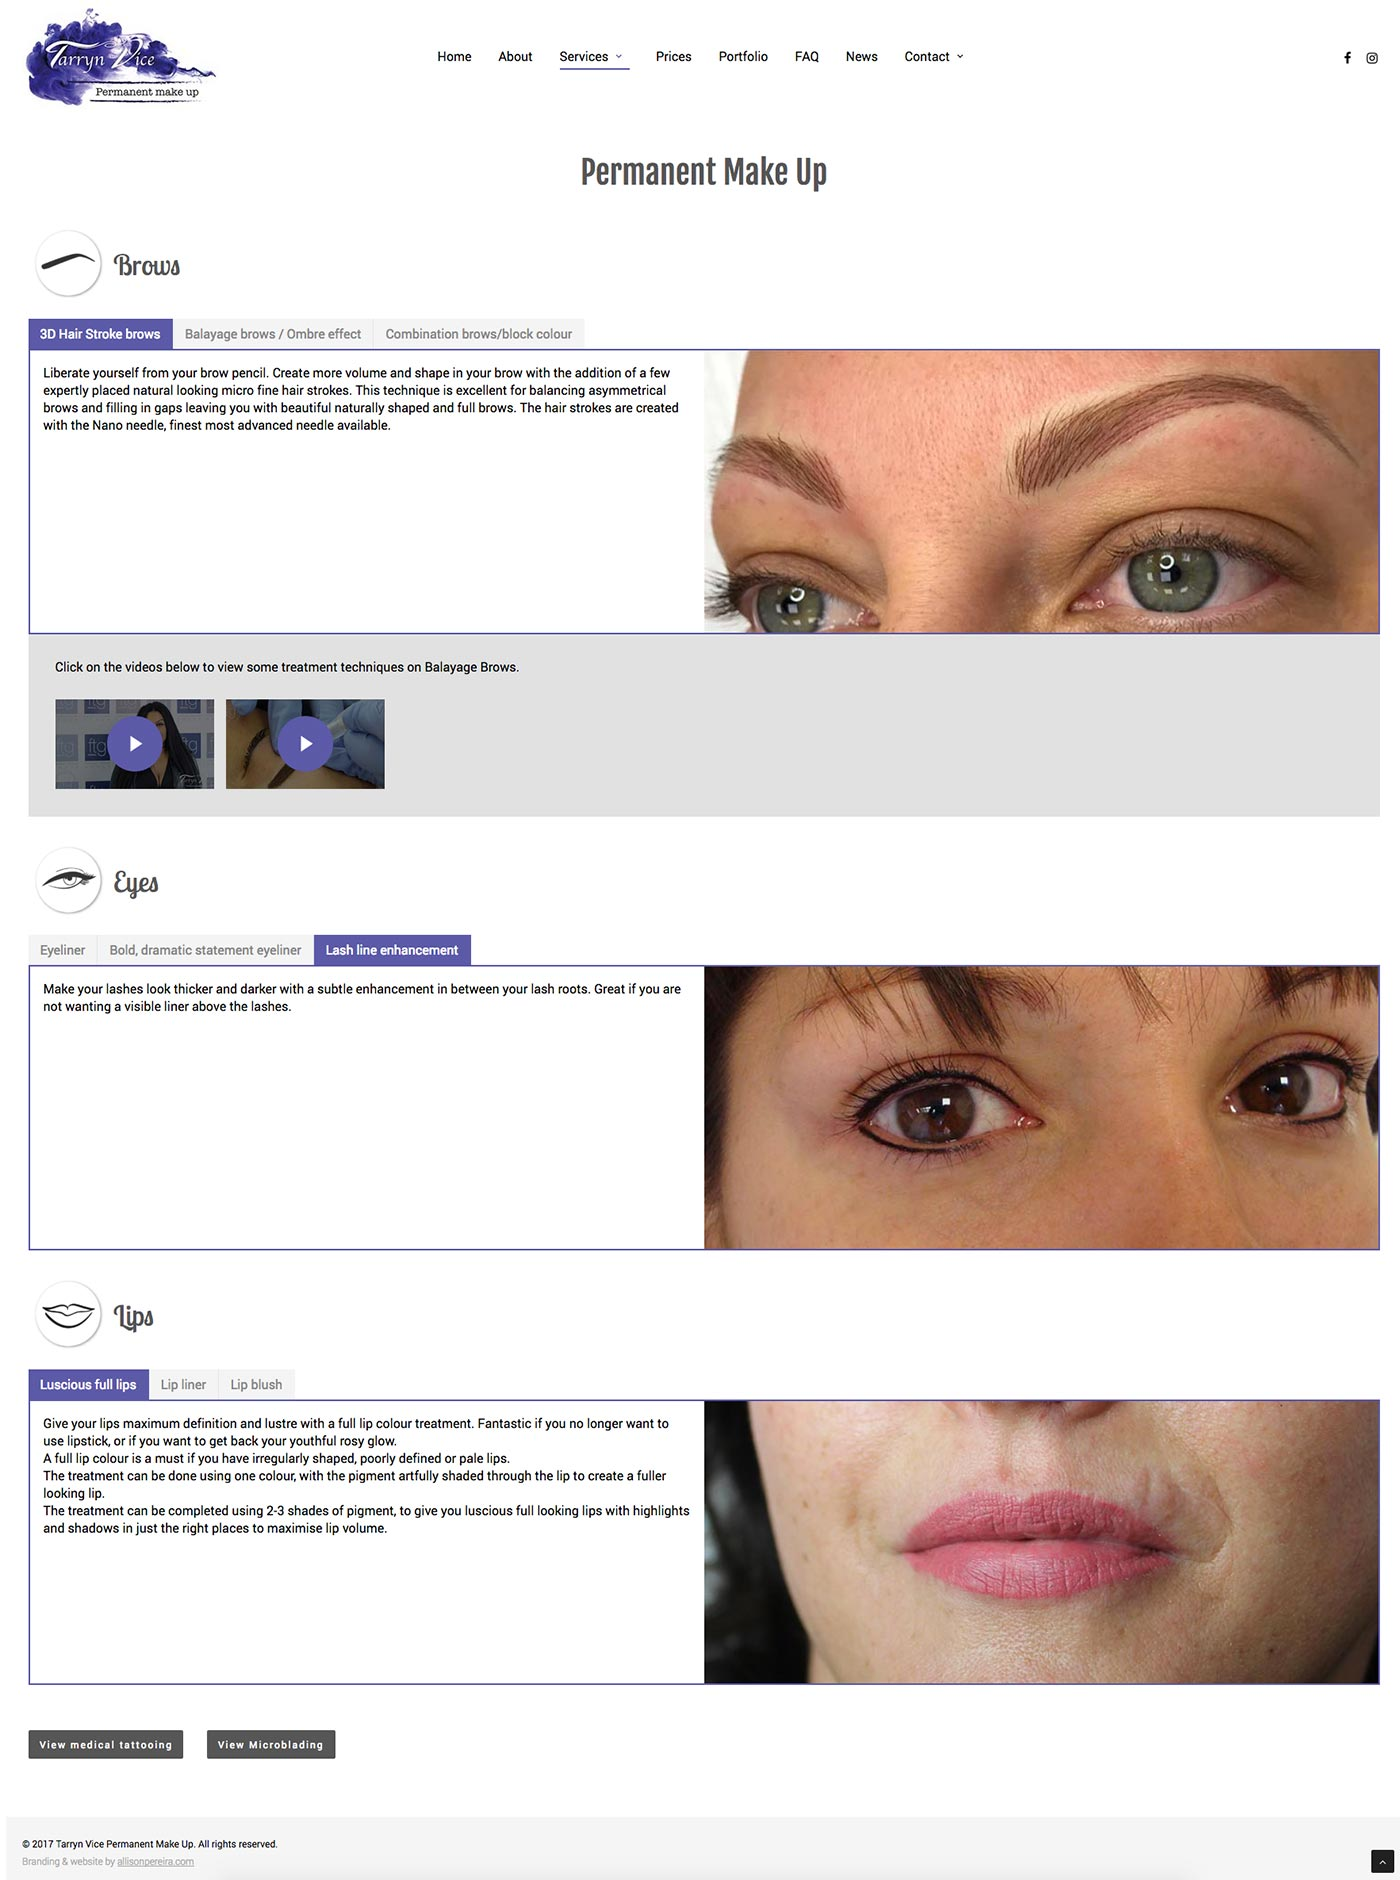 Tarryn Vice Permanent Make Up project work web page